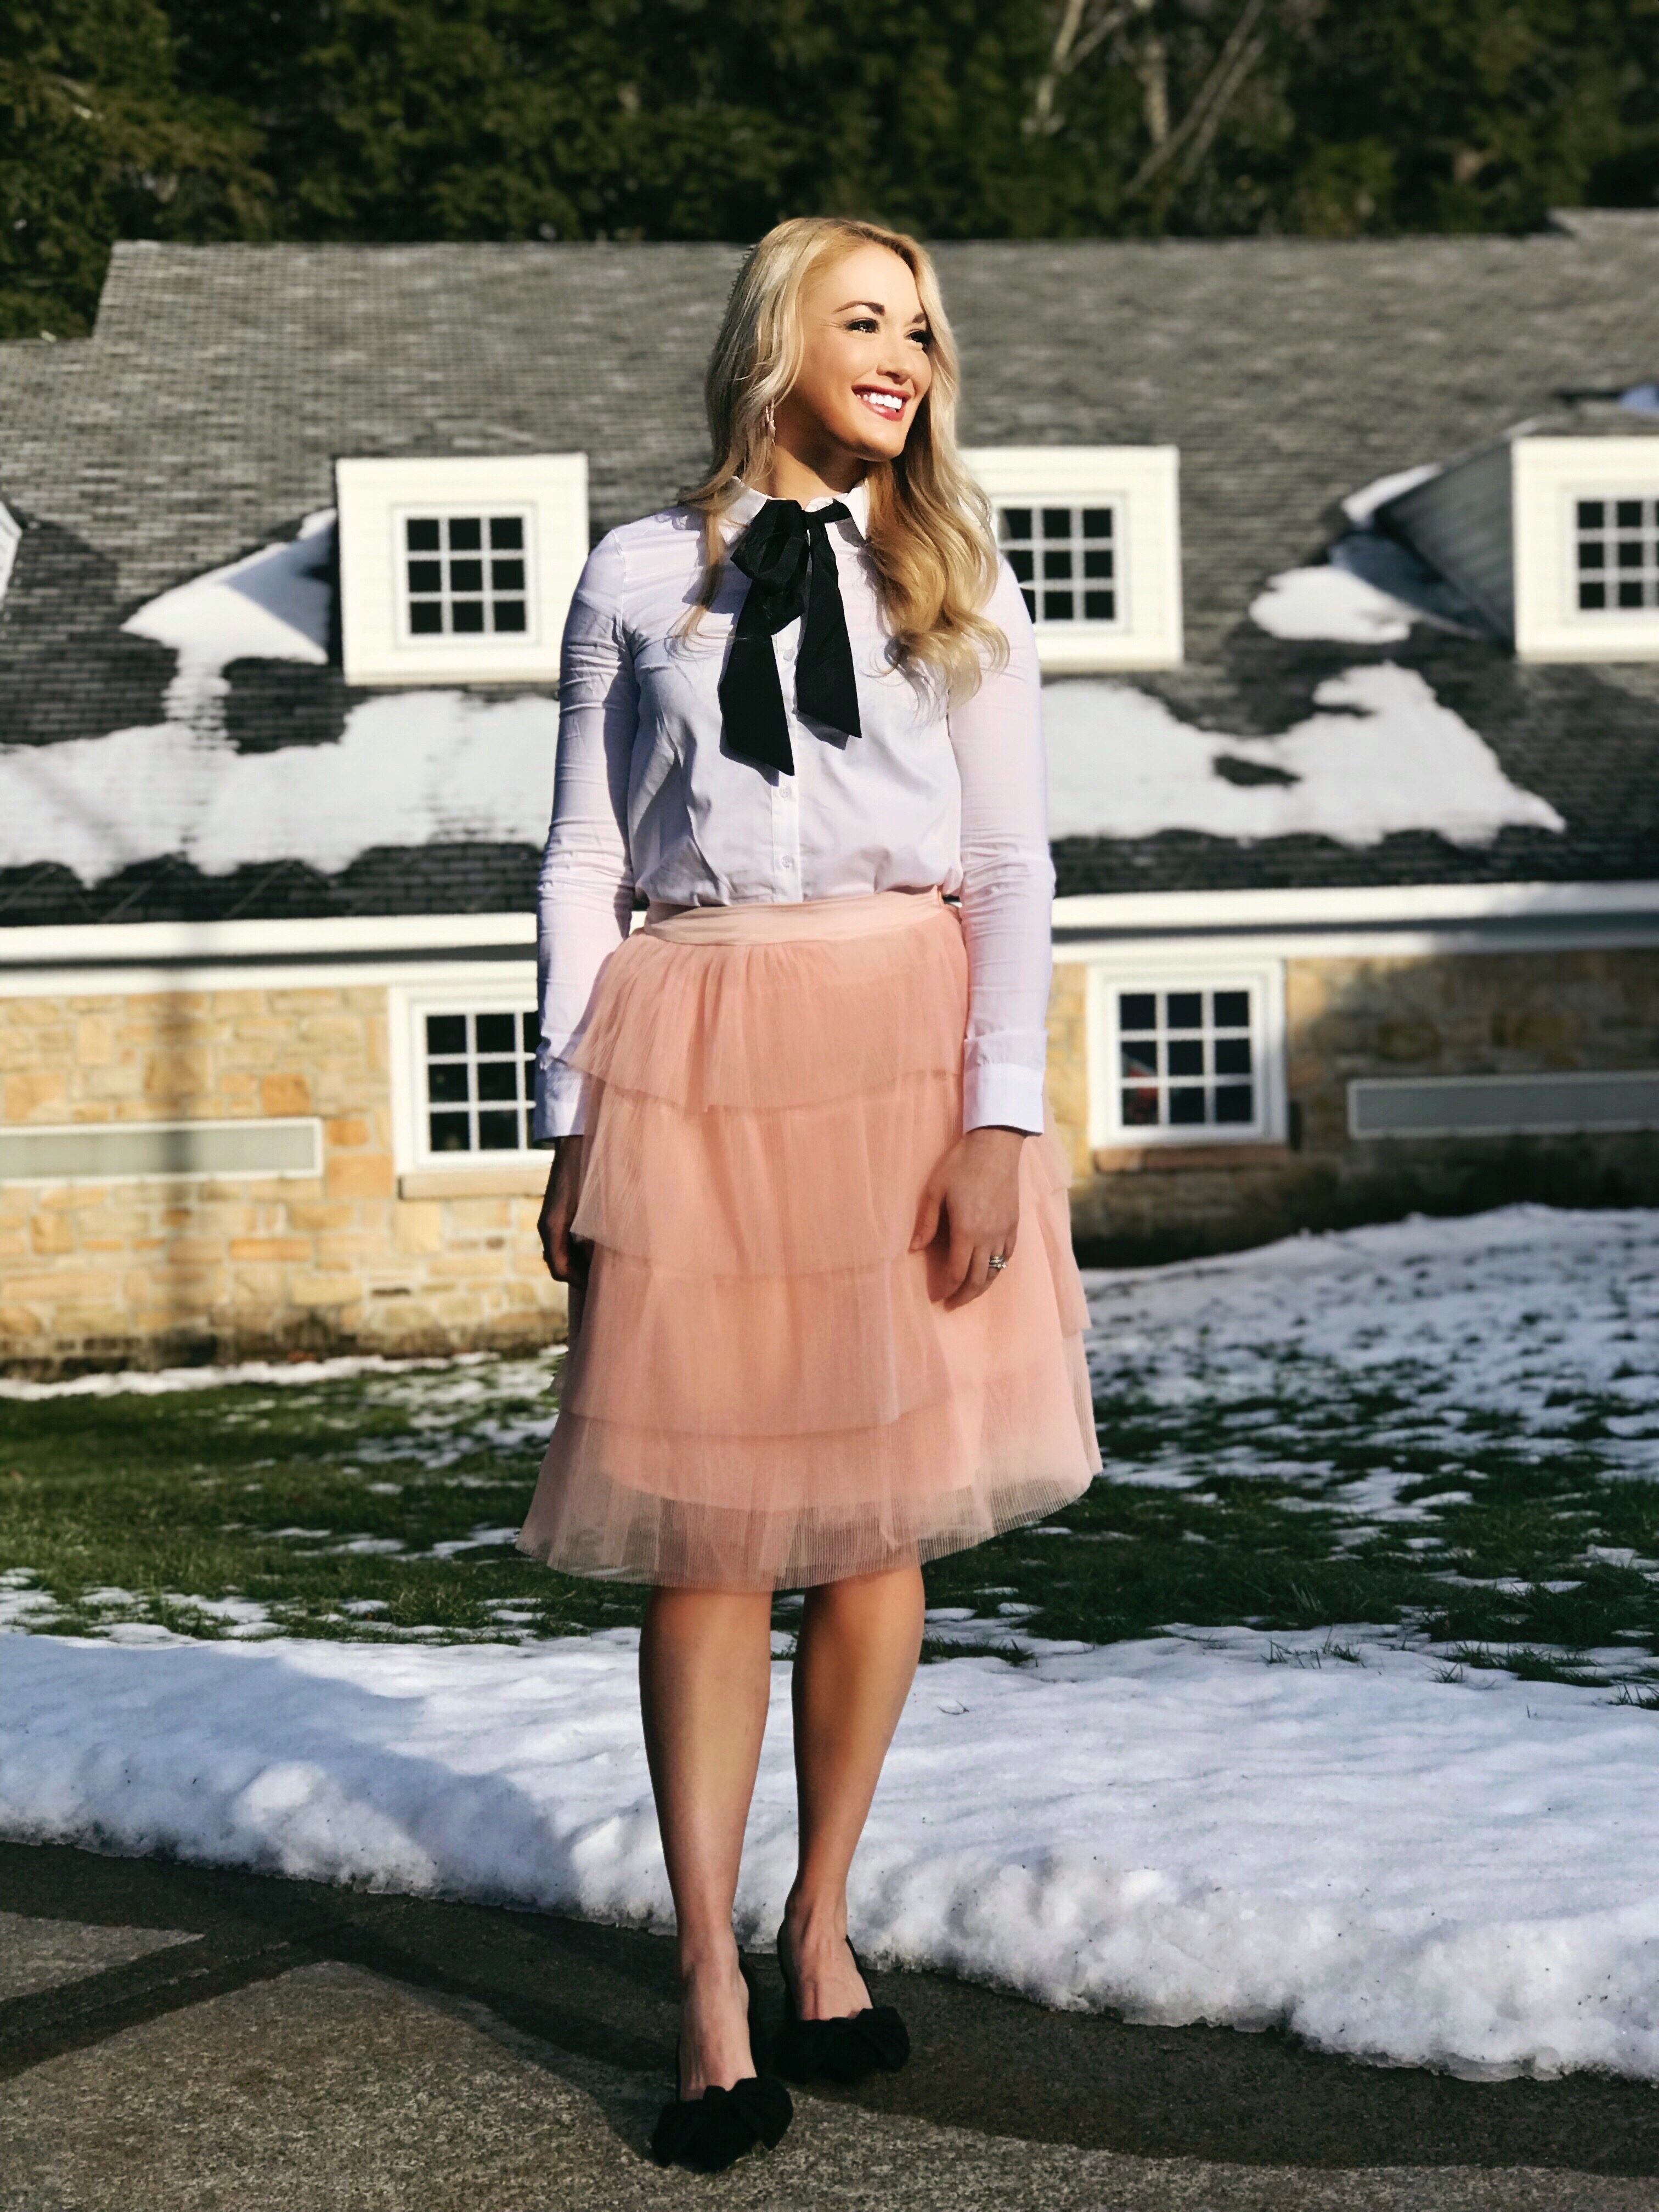 Bow Collar Blouse | Tiered Tulle Skirt | Bow Heels | www.styleherstrong.com | #classicstyle #preppy #fashionblogger